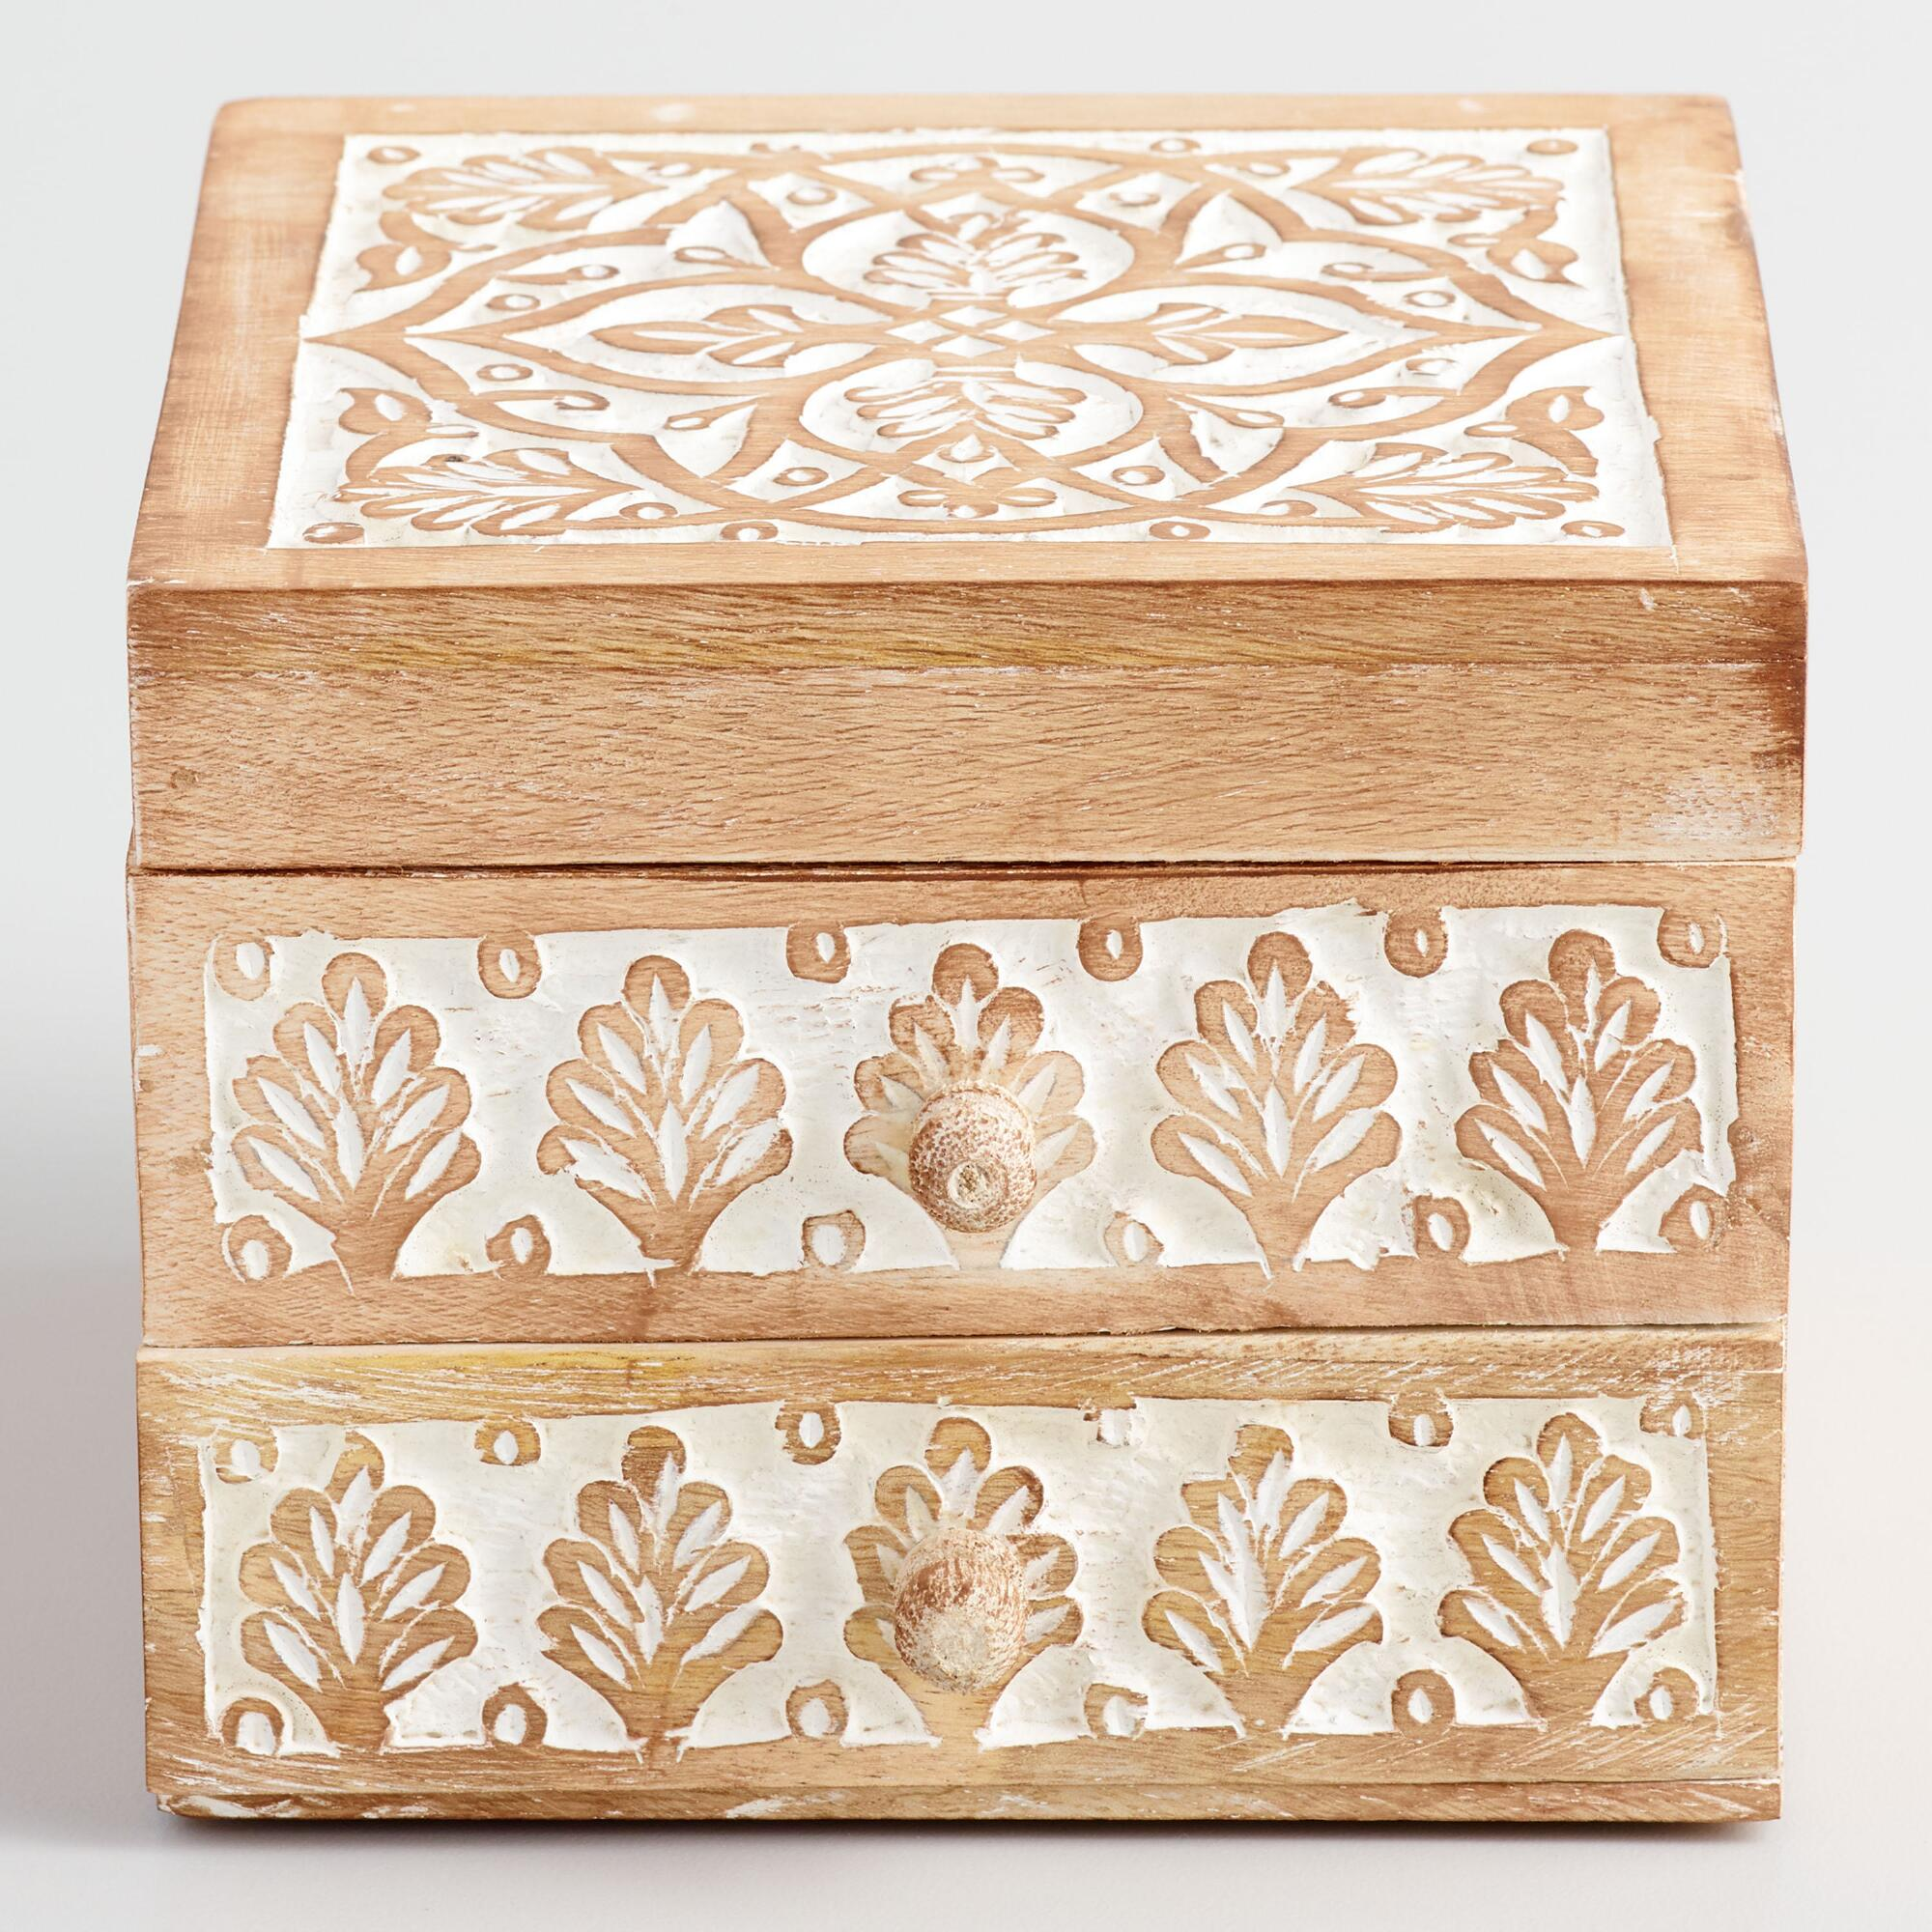 World Market Jewelry Box Delectable Whitewashed Carved Wood Jewelry Boxworld Market  Products Review